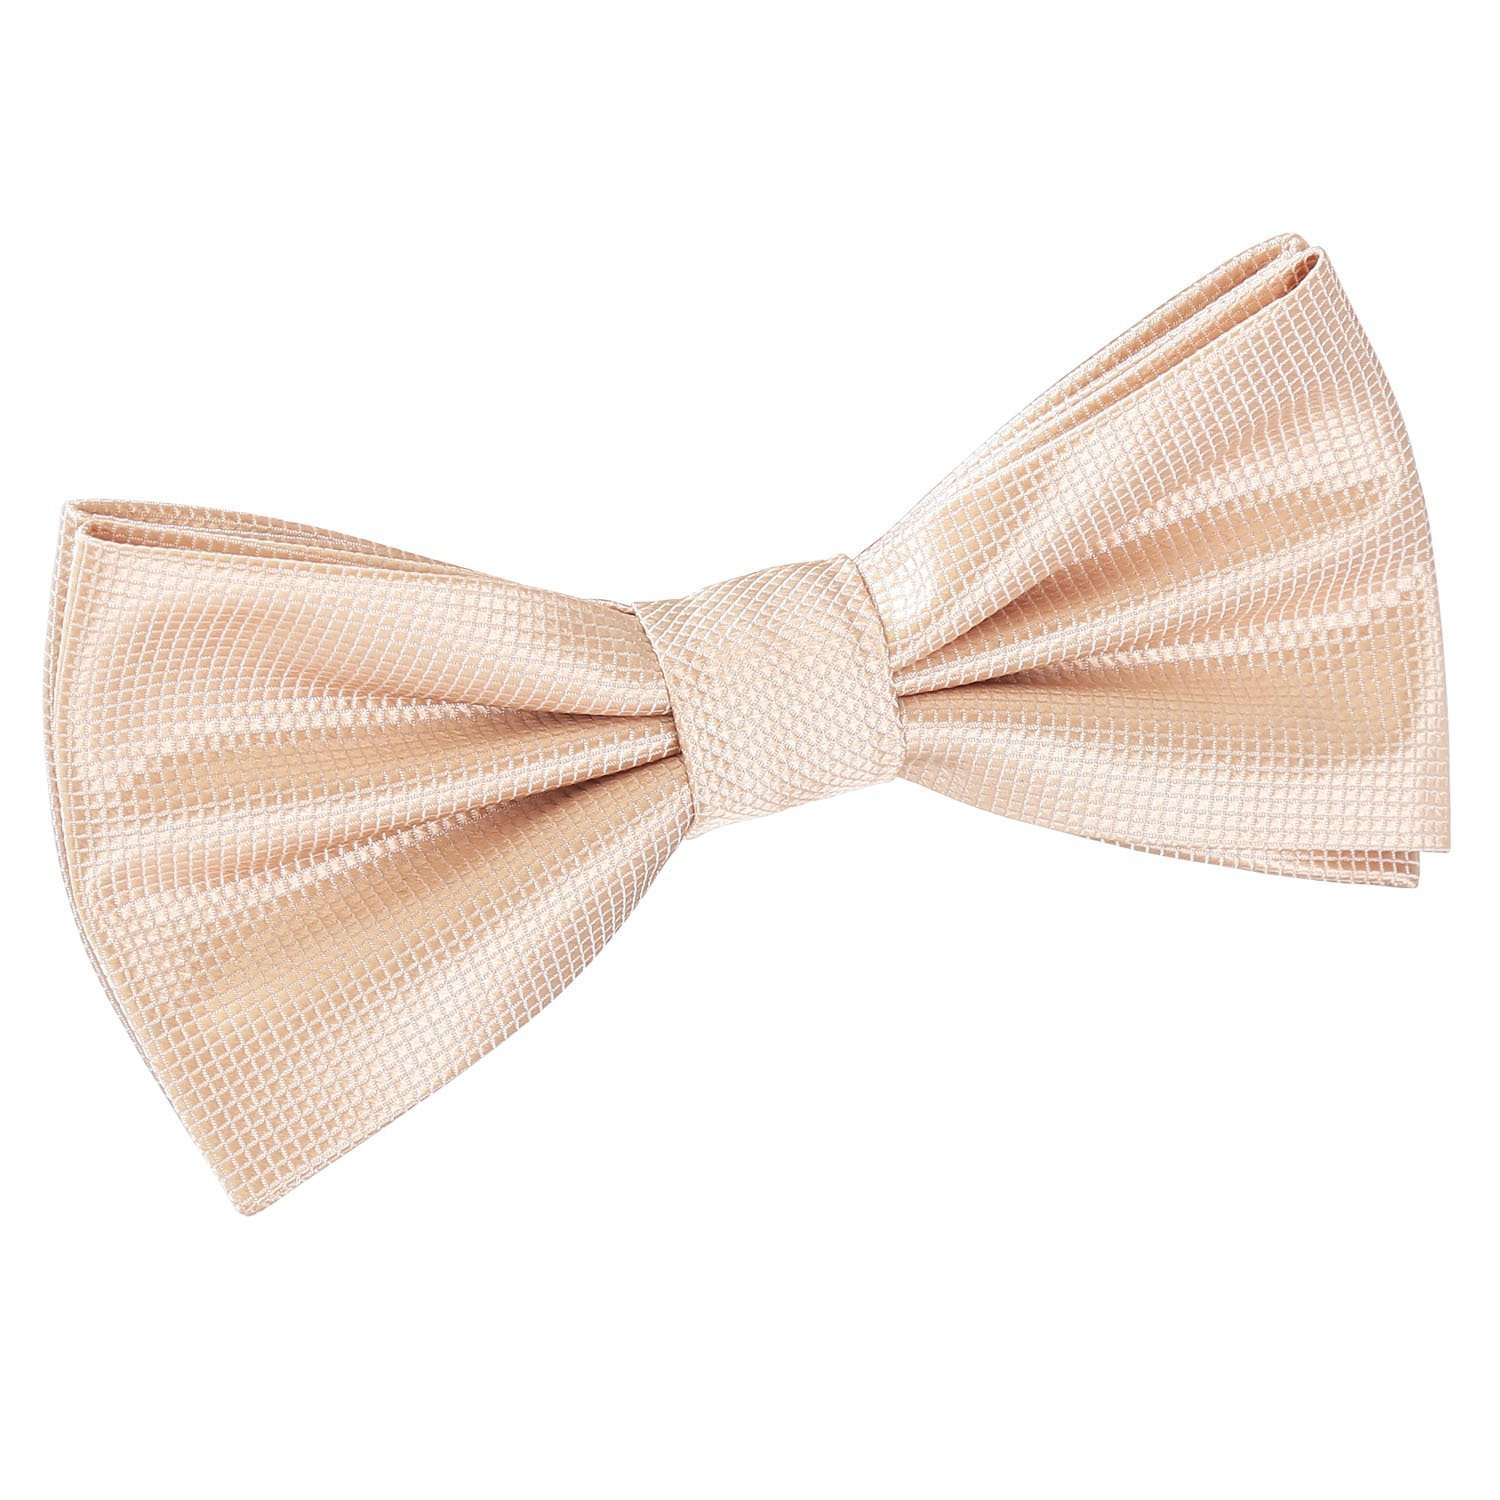 75264ac13a8b Details about DQT Woven Plain Solid Check Champagne Formal Classic Mens Pre-Tied  Bow Tie